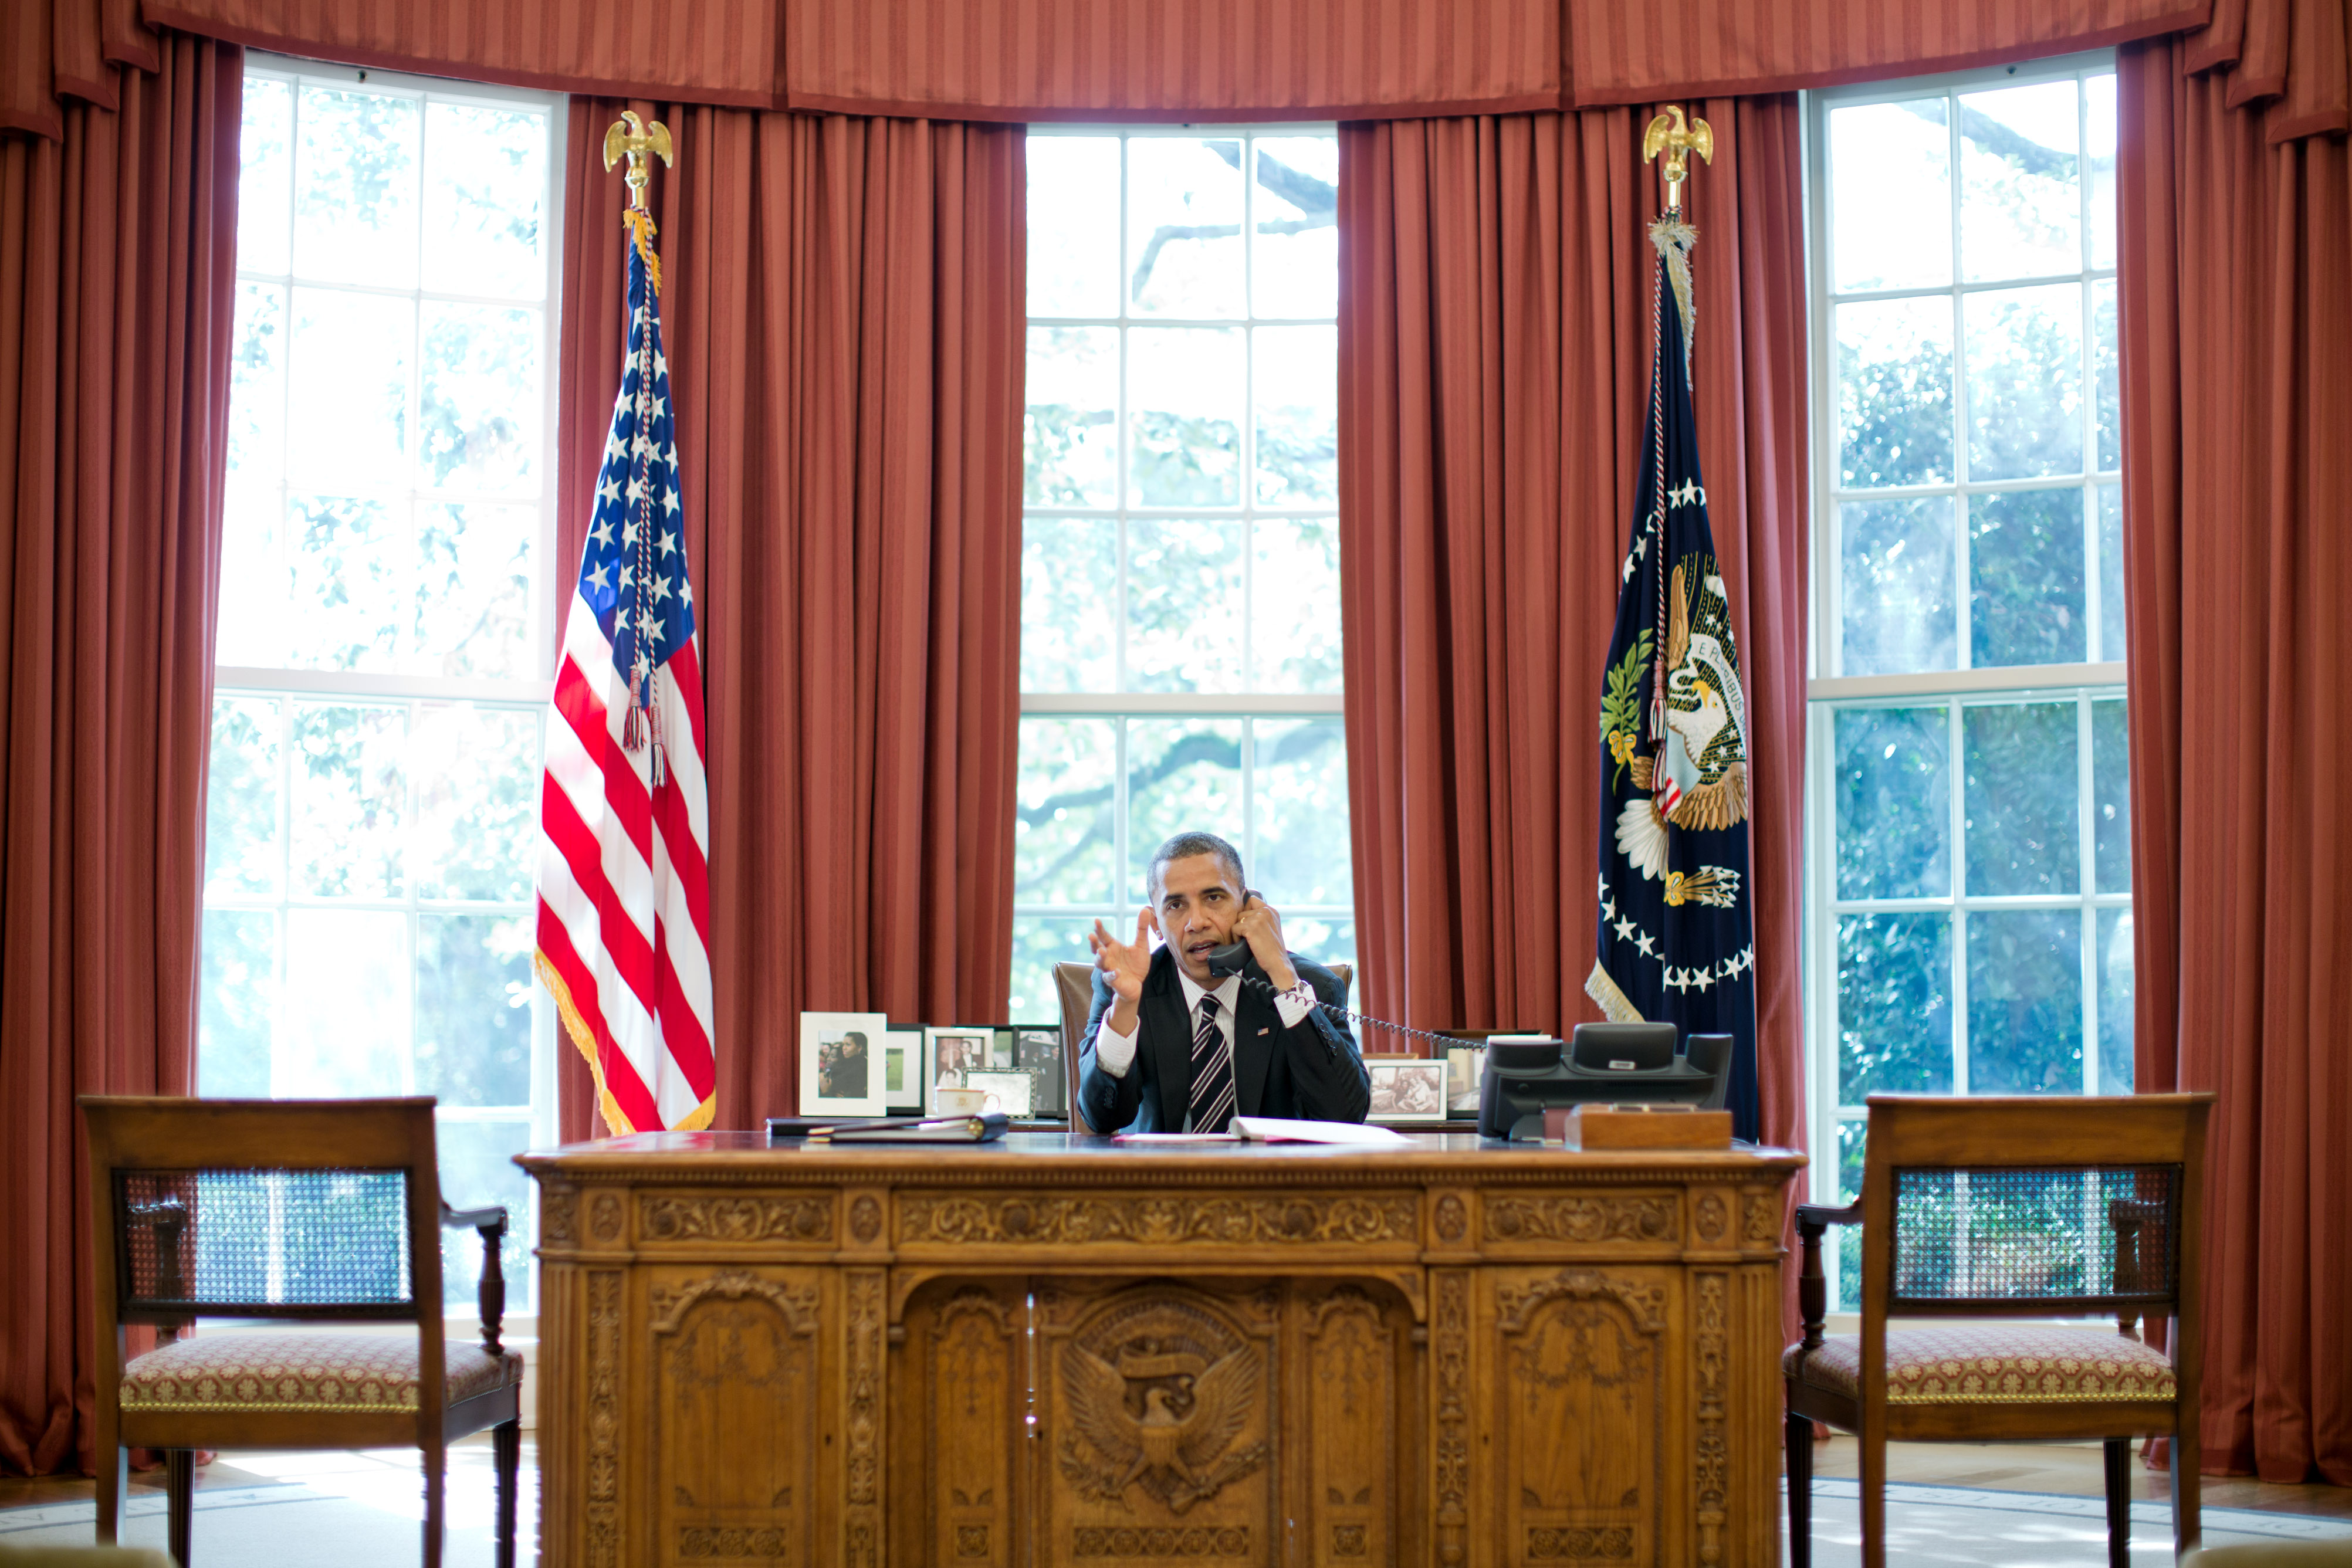 In this handout frm the White House, U.S. President Barack Obama talks on the phone with Israeli Prime Minister Benjamin Netanyahu from the Oval Office September 28, 2012 in Washigton, DC.